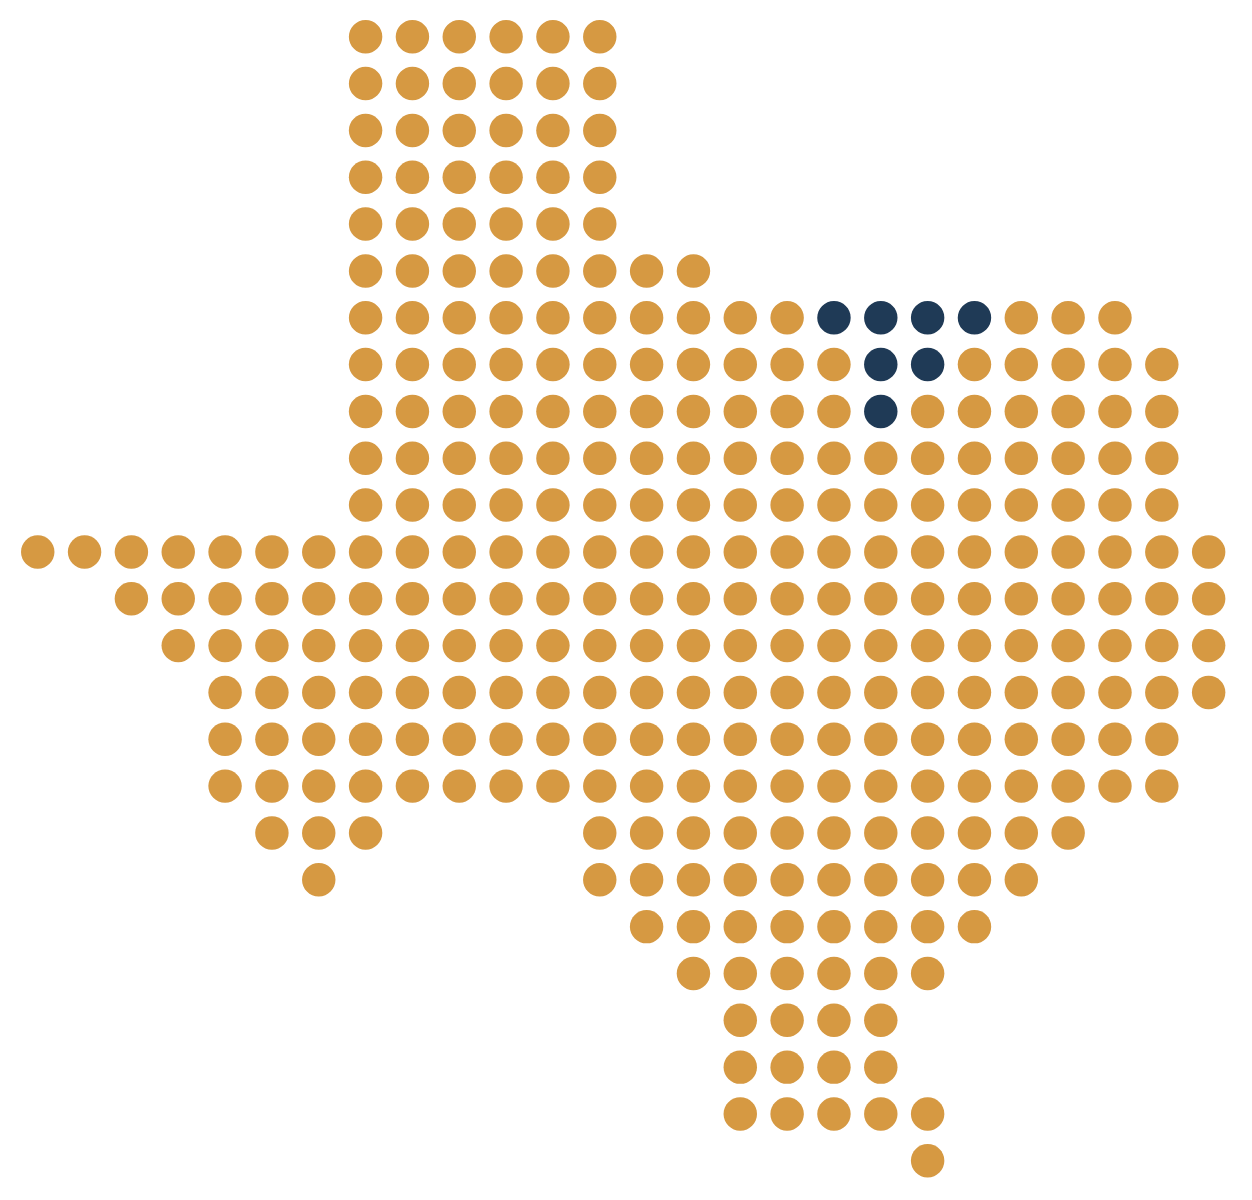 north-texas-service-areas-map.png